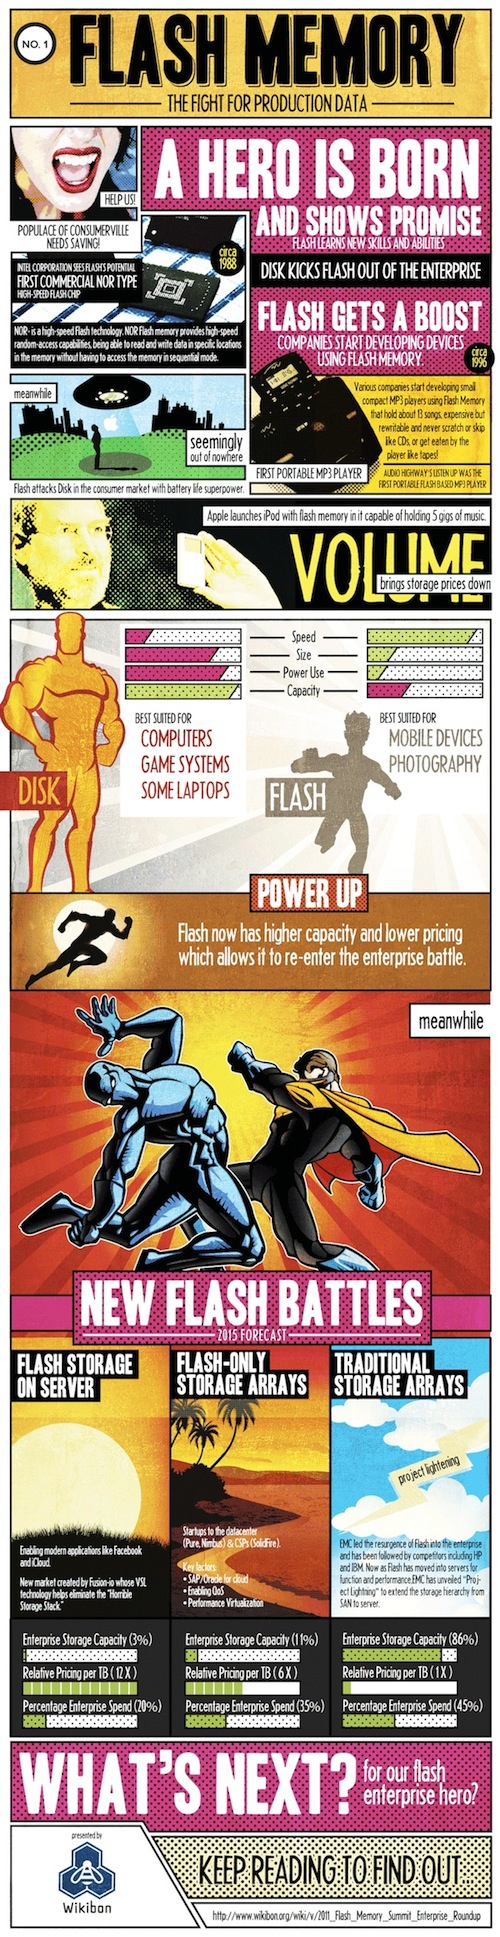 A Hero is Born: Flash Memory